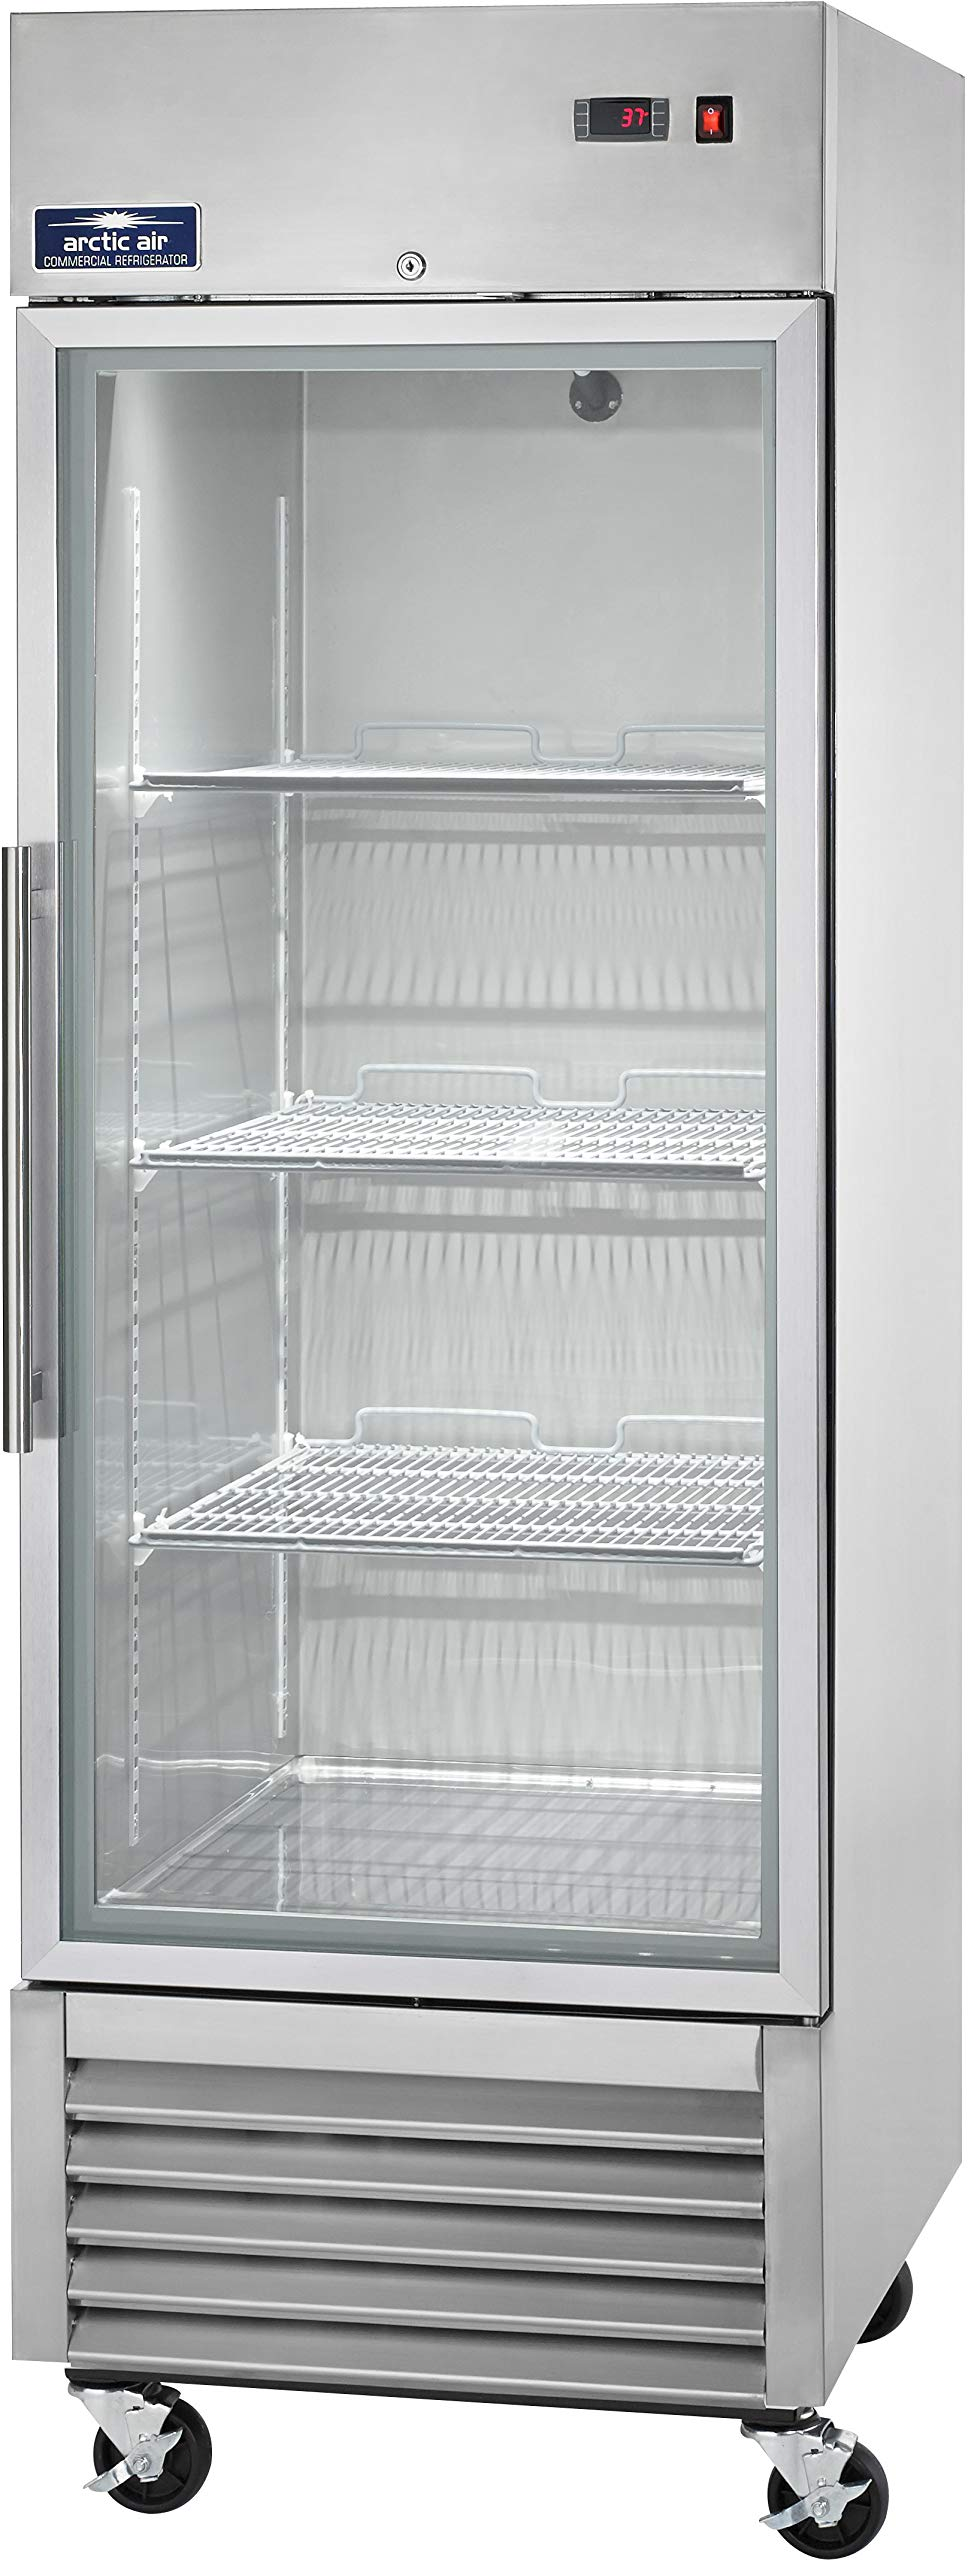 Arctic Air AGR23 27'' One Section Glass Door Reach-in Refrigerator - 23 cu. ft. by Arctic Air